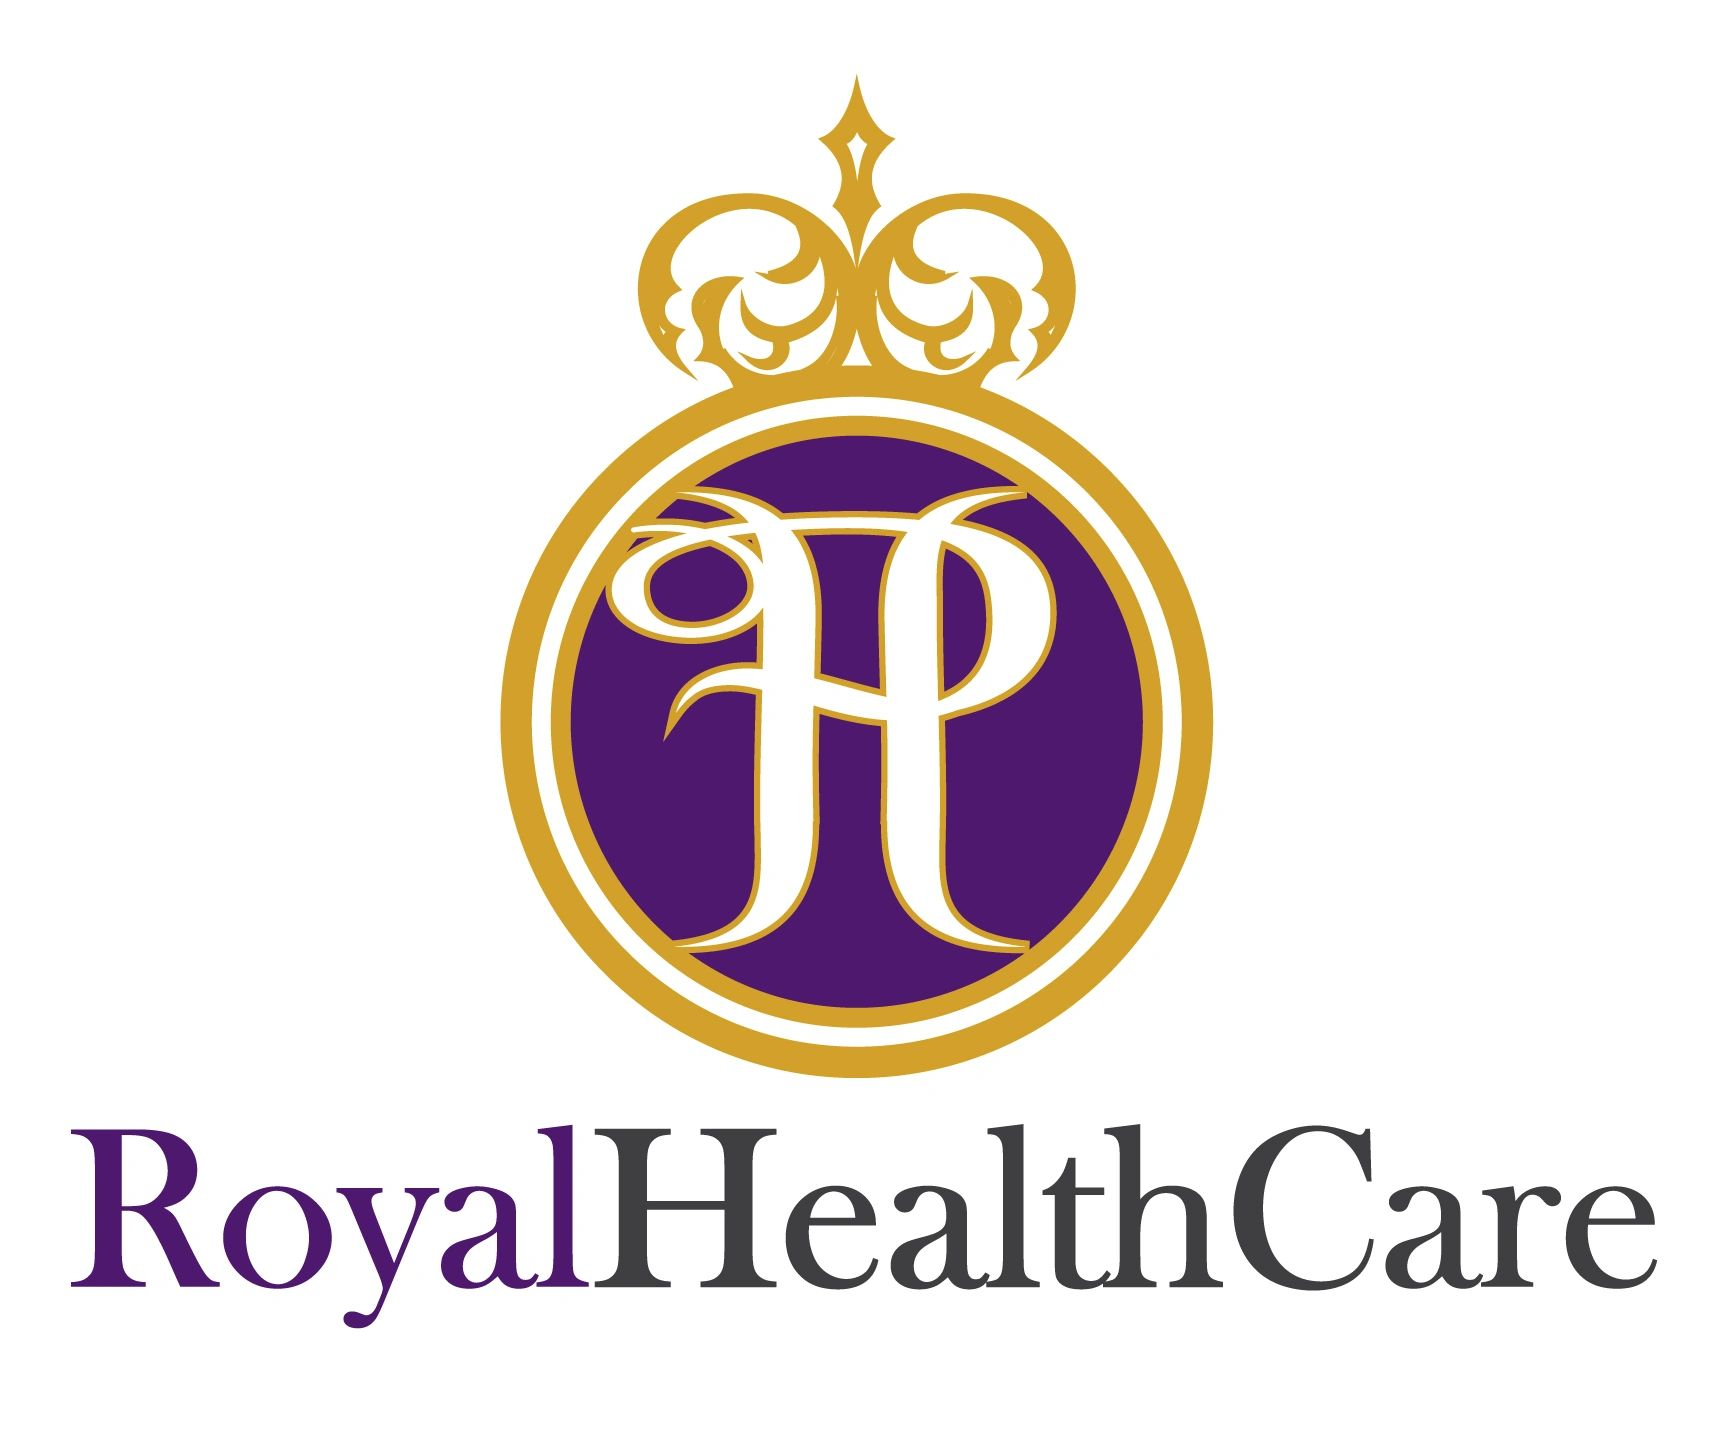 Royal Health Care Royal HealthCare Chiropractor Oak Park